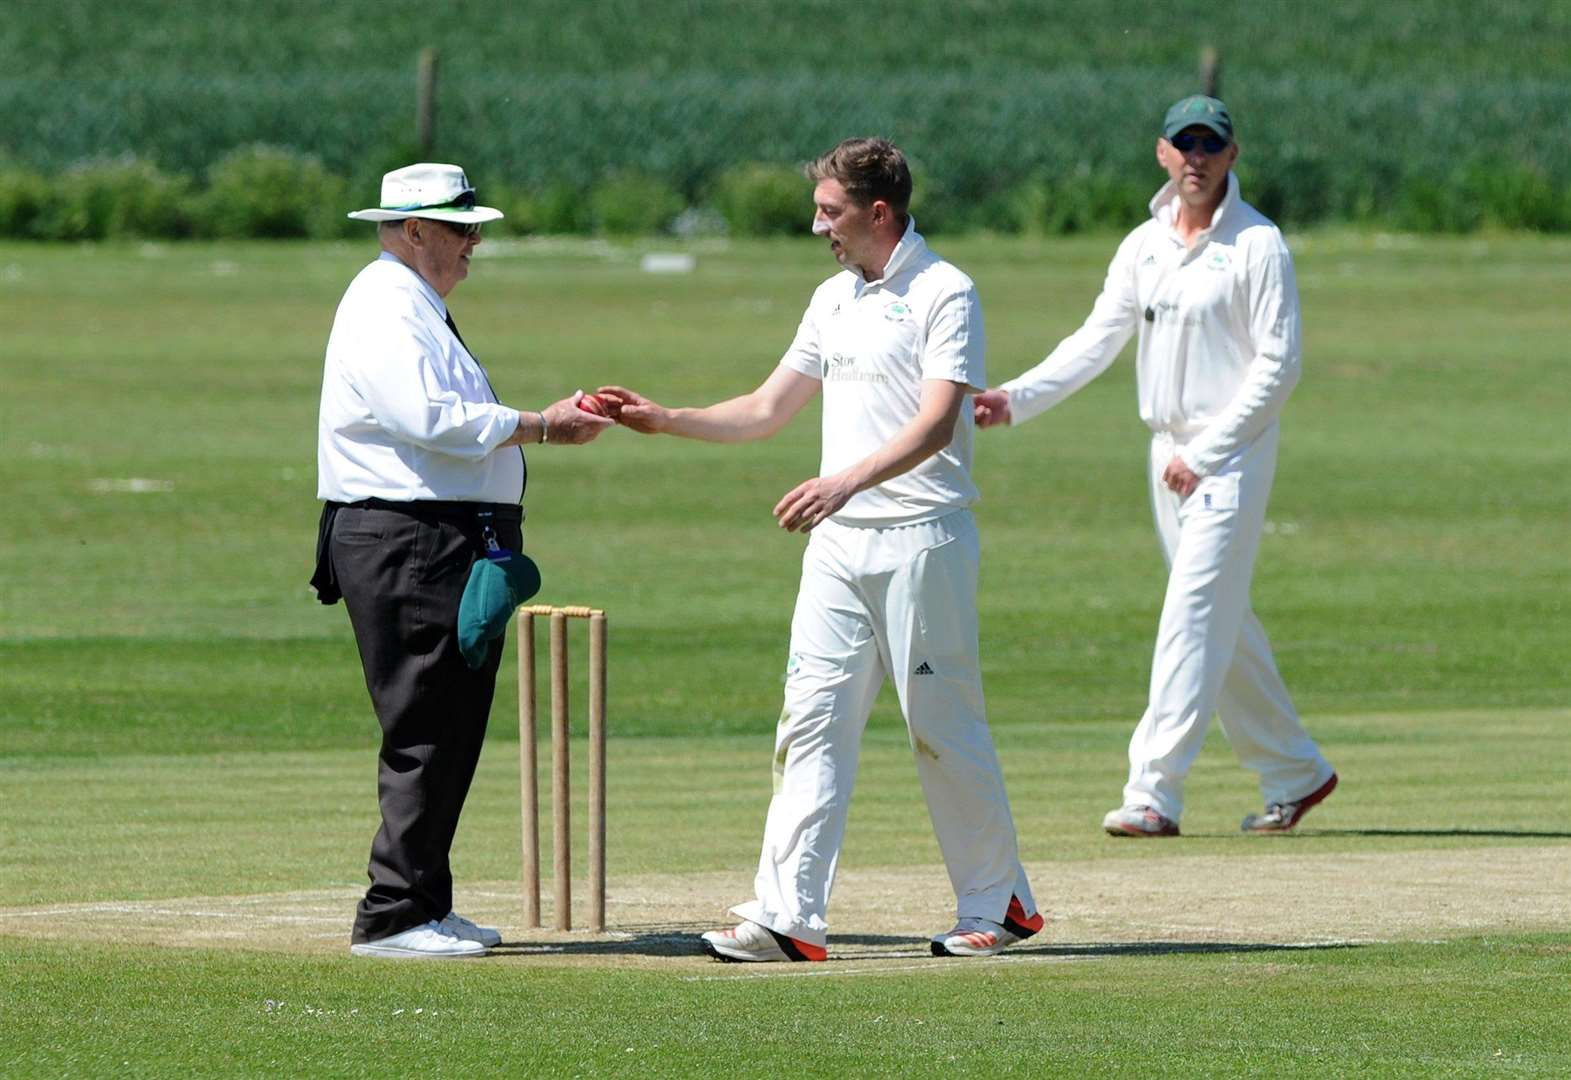 Batting collapse ends any chance of Walsham victory